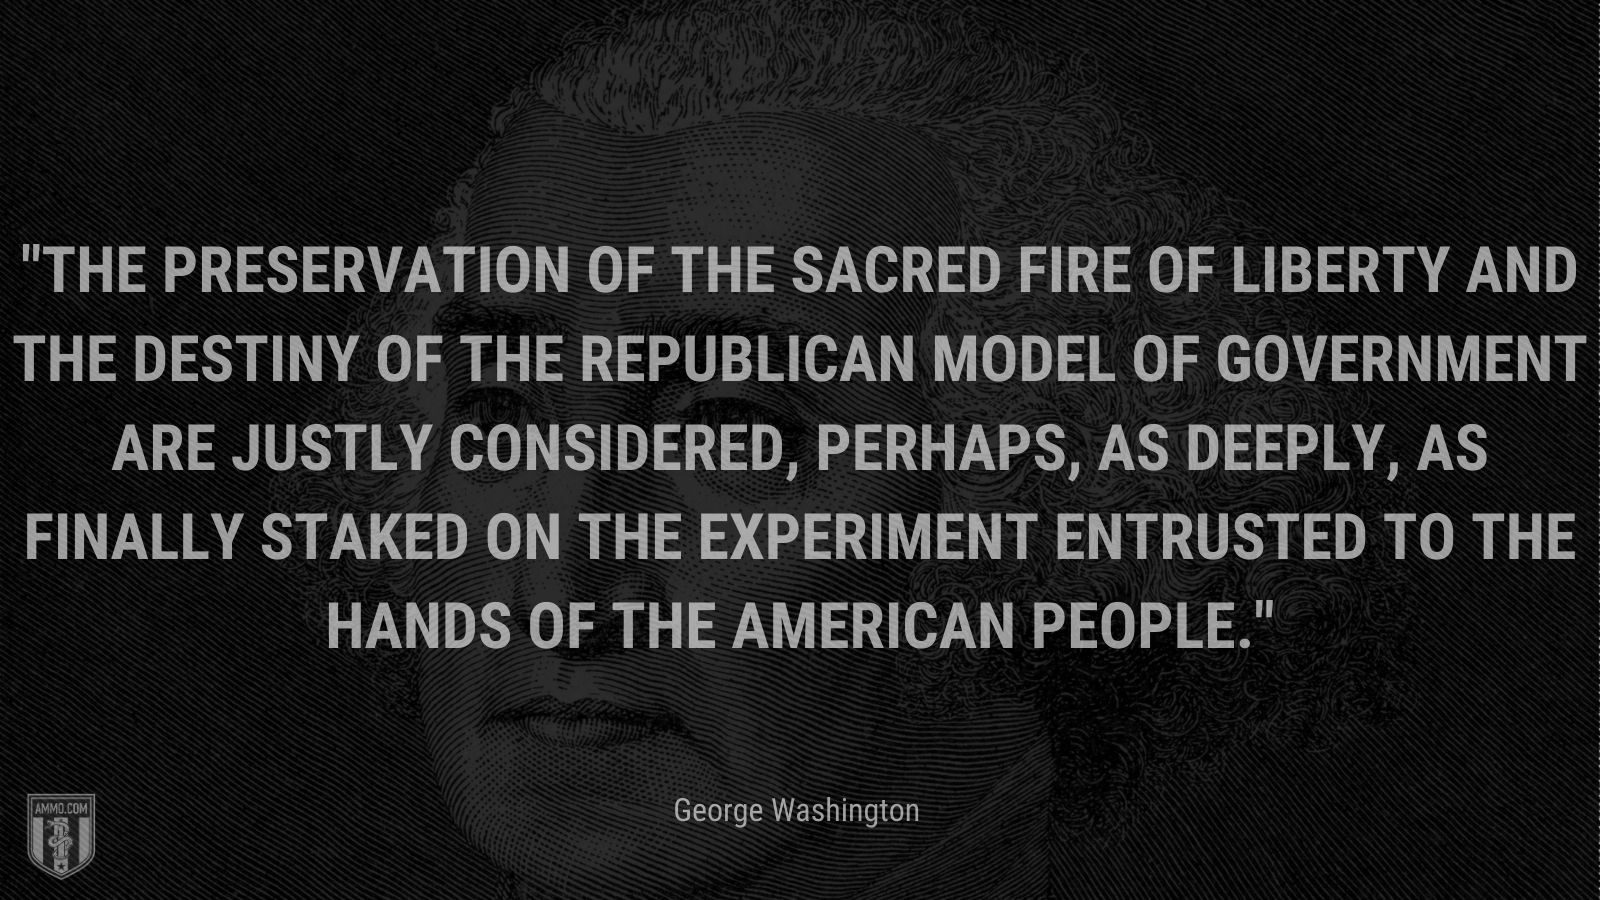 """""""The preservation of the sacred fire of liberty and the destiny of the republican model of government are justly considered, perhaps, as deeply, as finally staked on the experiment entrusted to the hands of the American people."""" - George Washington"""